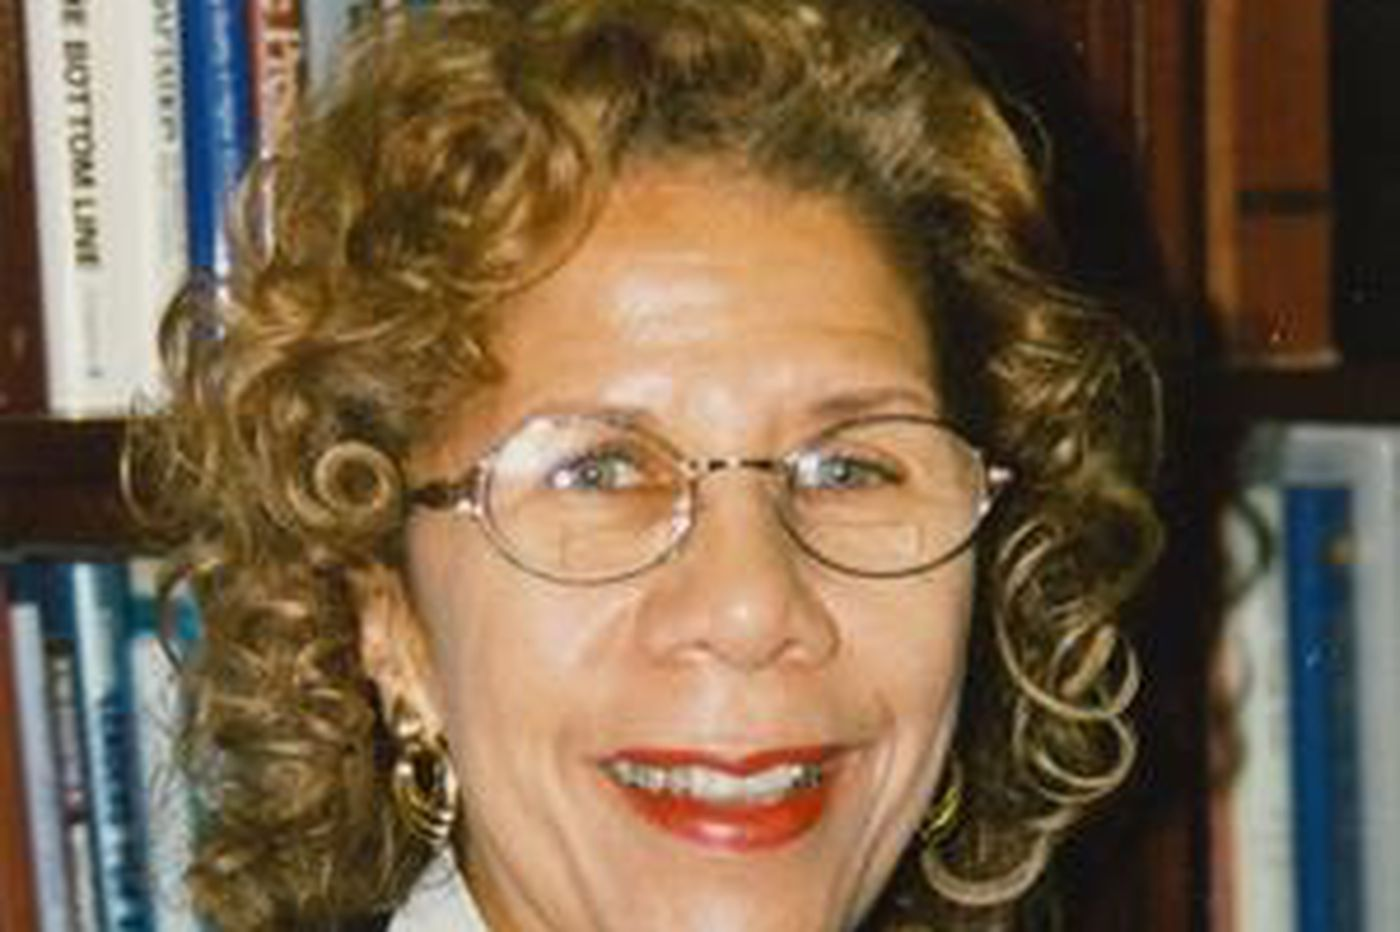 Jean Campbell Moore, educator, social work administrator, and radio host, dies at 92